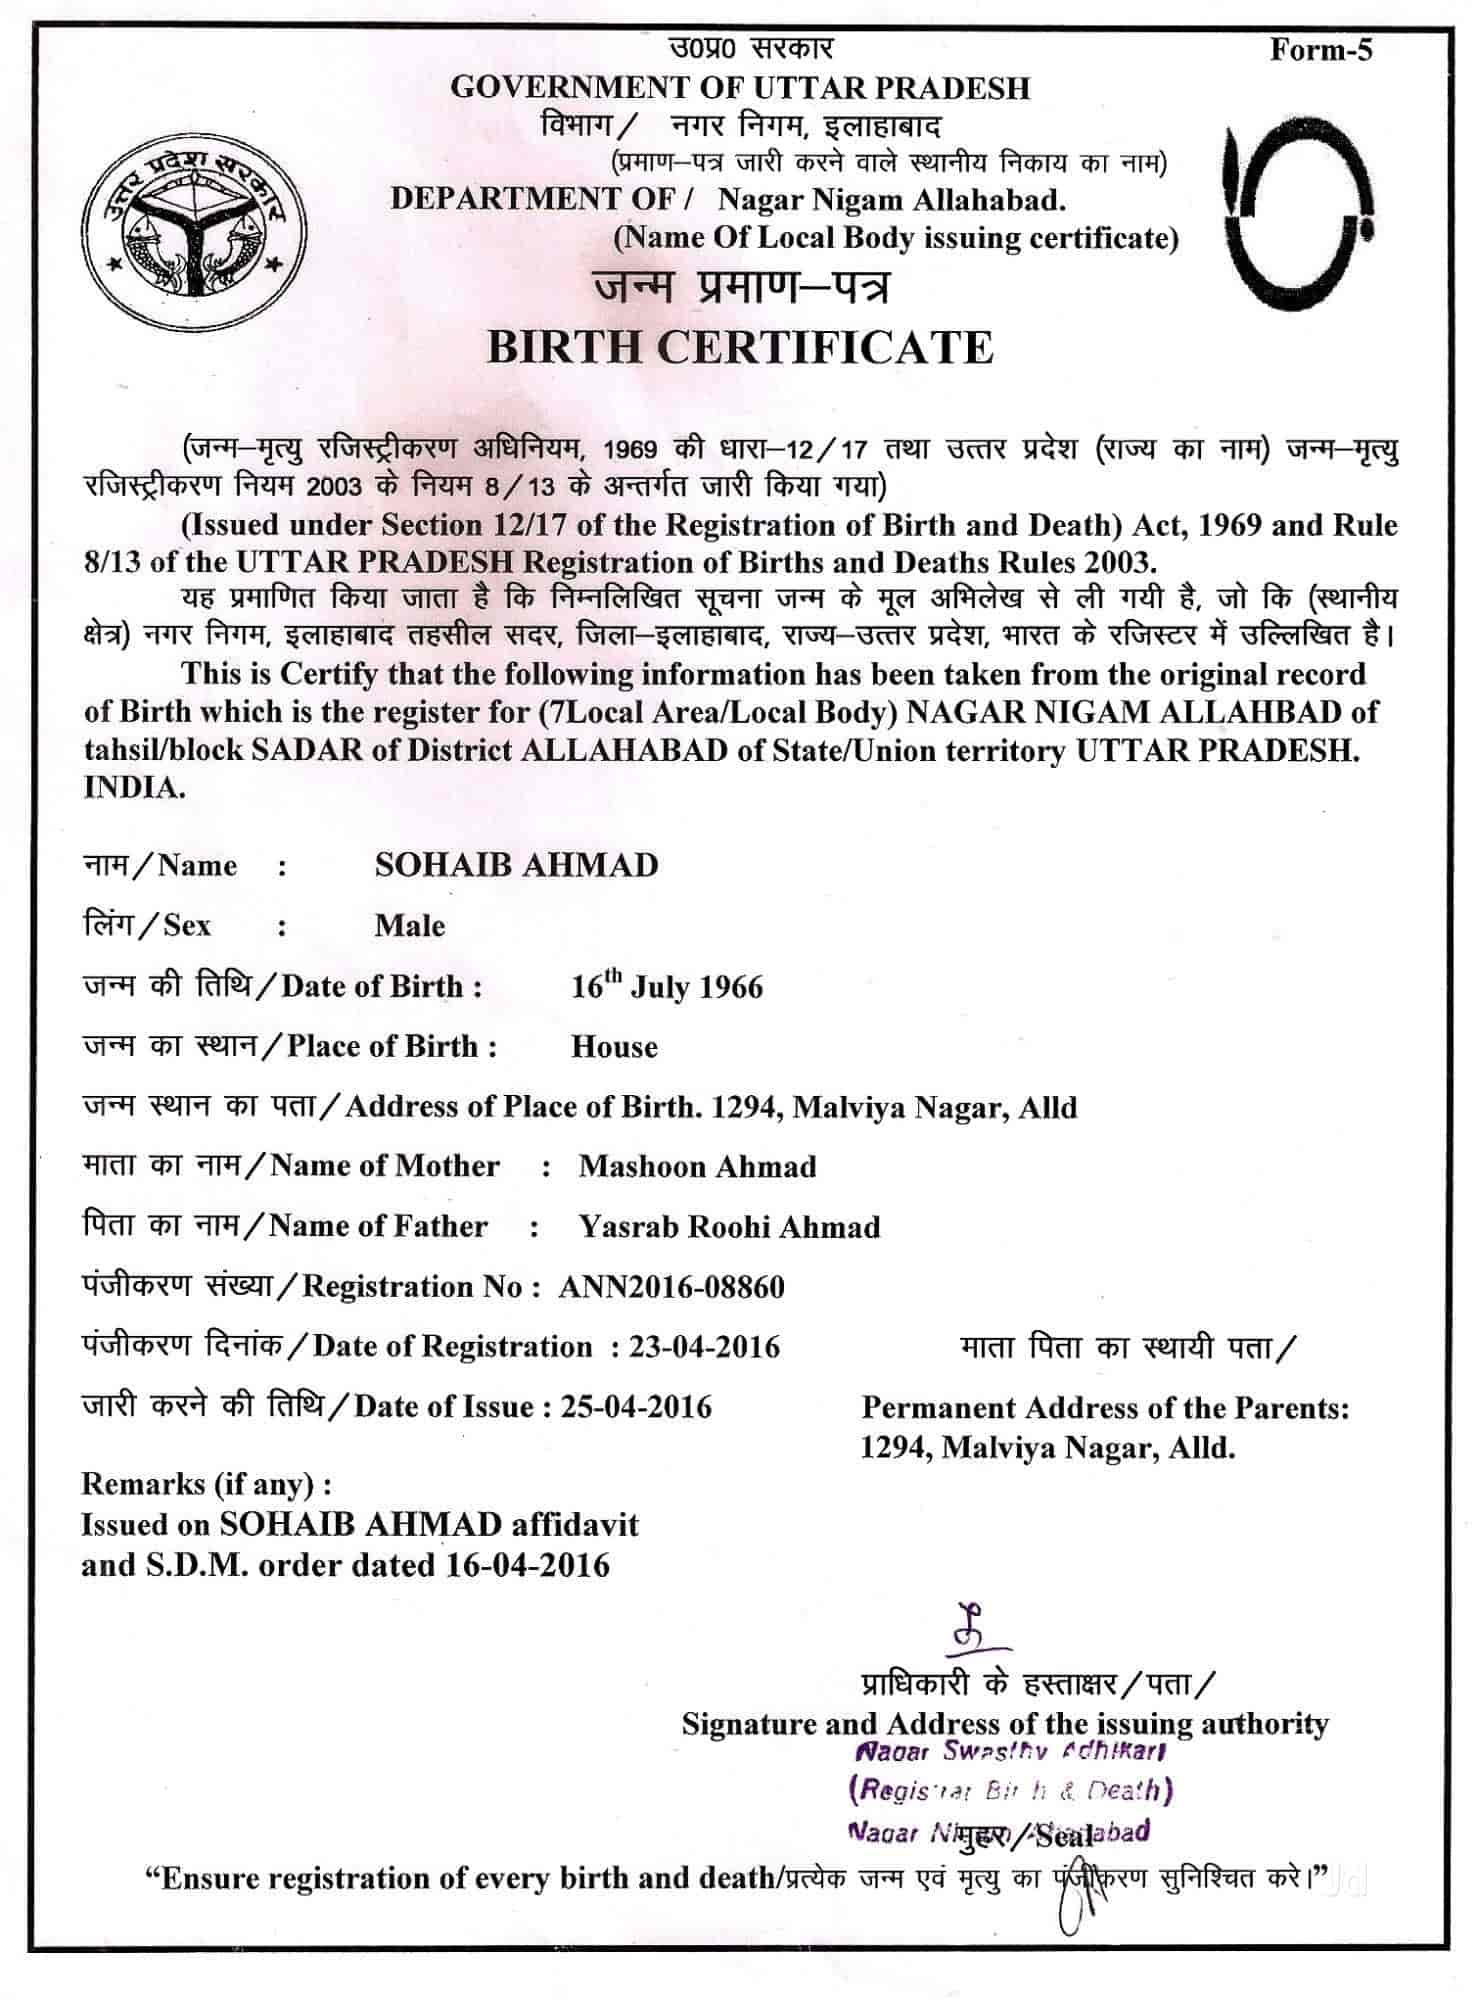 allahabad birth certificate service photos civil lines allahabad